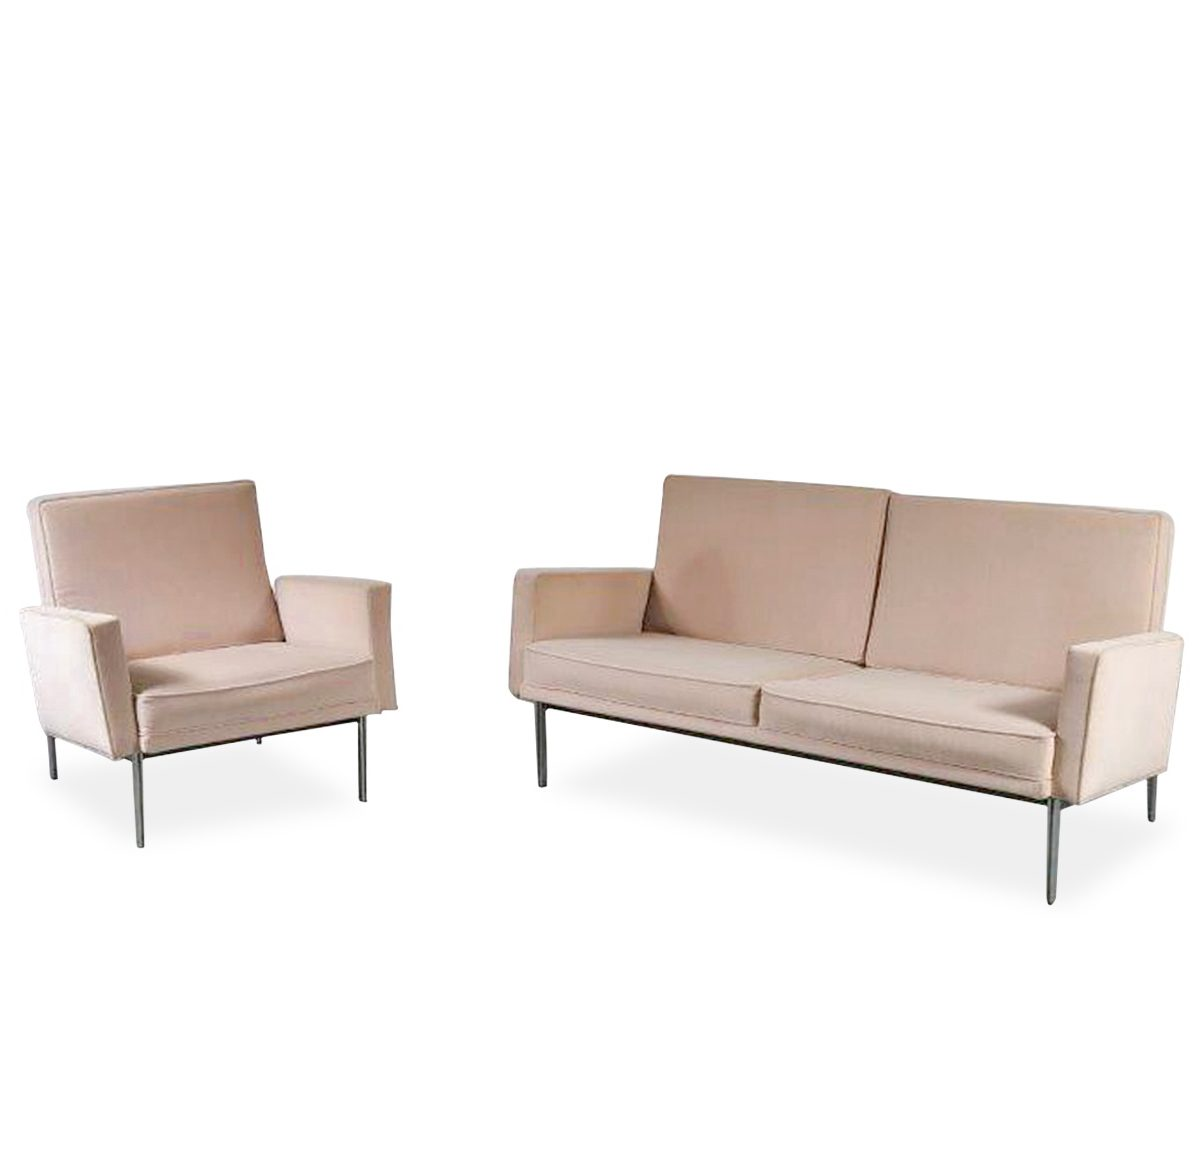 D 190801 (356) m23702 1960s Two-seater sofa + easy chair on chrome metal base with beige upholstery, Parallel Bar series Florence Knoll Knoll Int. / USA